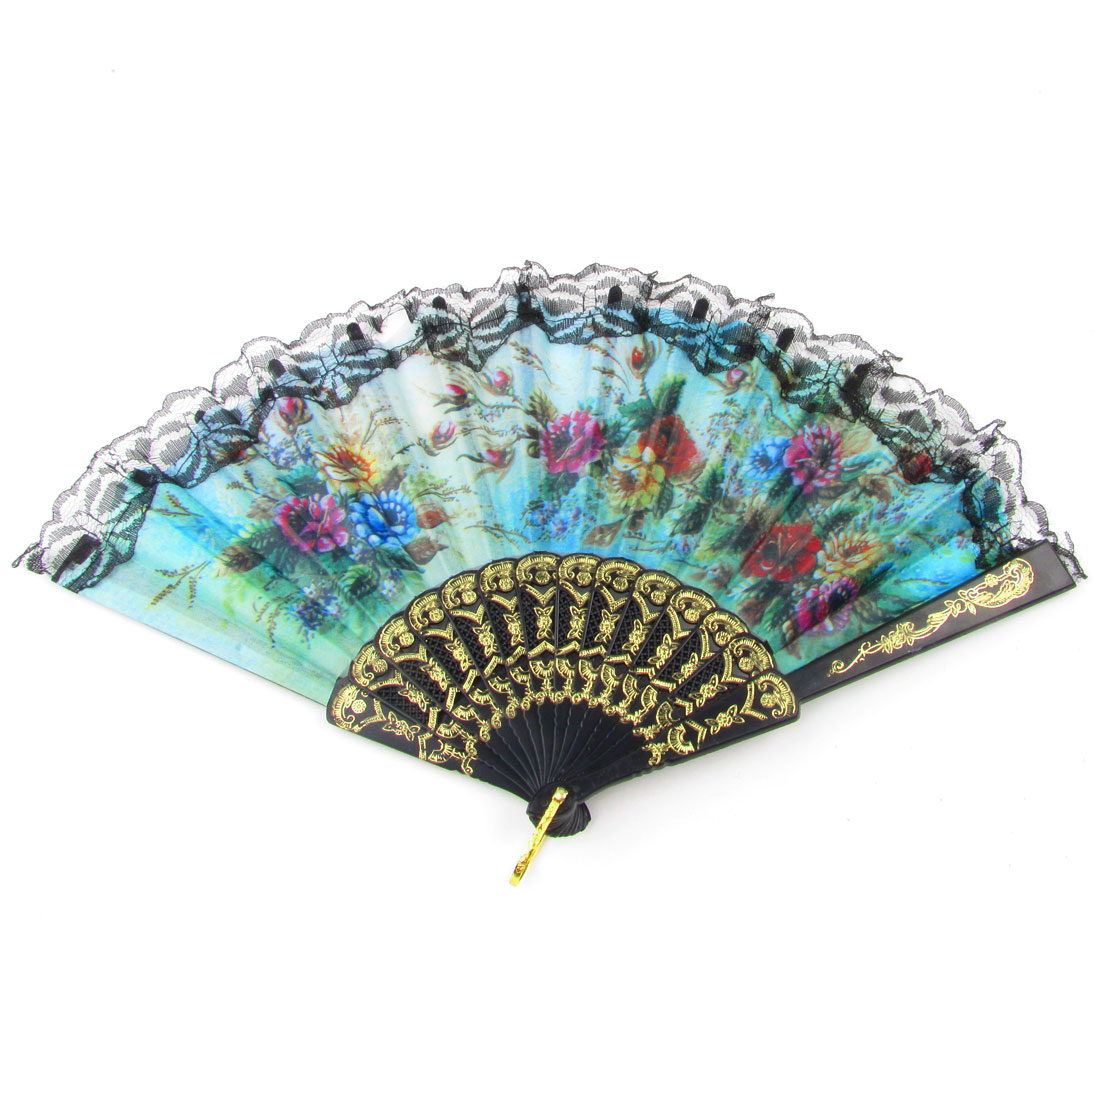 Lady Colorful Floral Plastic Ribs Lace Decor Folding Hand Fan